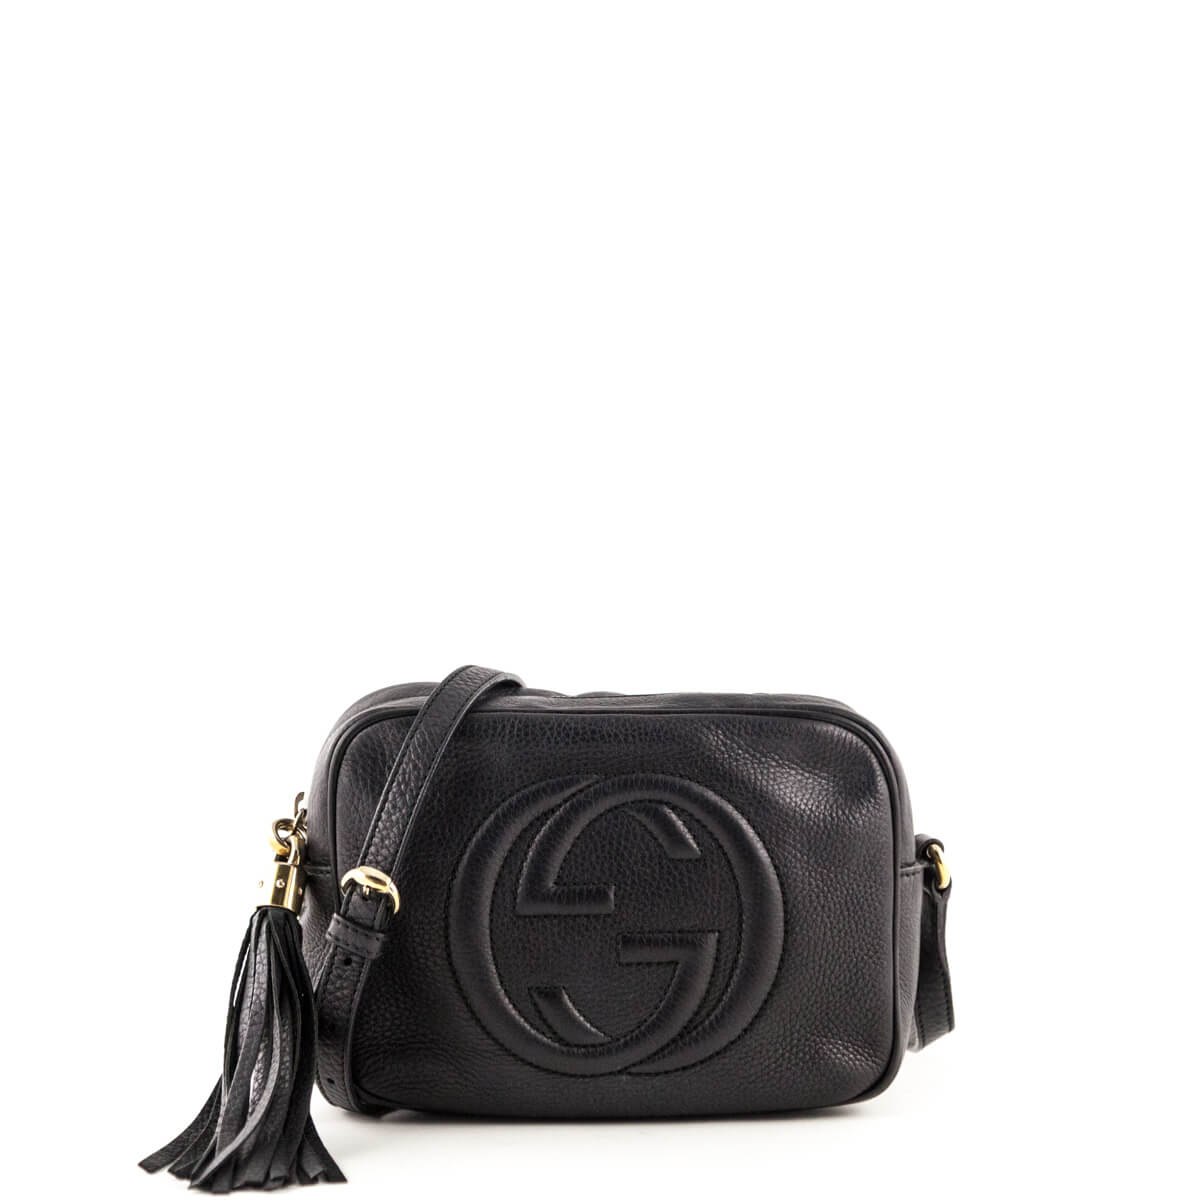 07b7d97b2f05 Gucci Anthracite Soho Disco - LOVE that BAG - Preowned Authentic Designer  Handbags ...